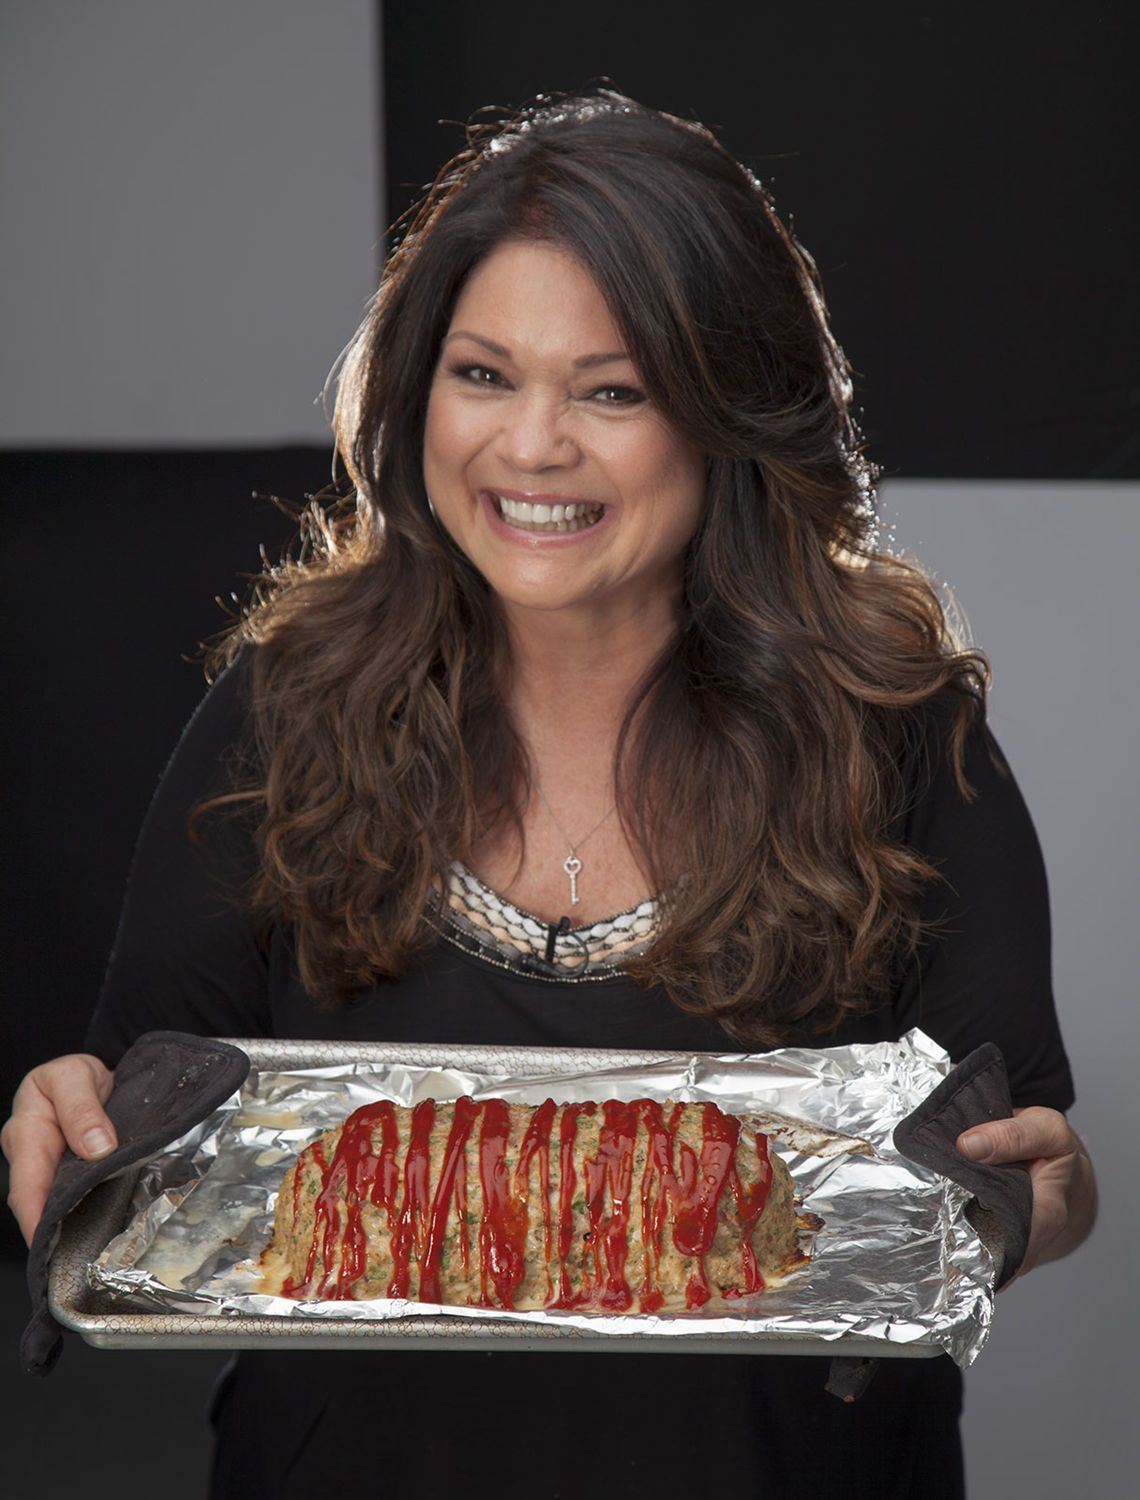 Mom Son And Meatloaf Actress Valerie Bertinelli Launches New Cookbook Food Network Show Food Network Recipes Chicken Recipes New Cookbooks